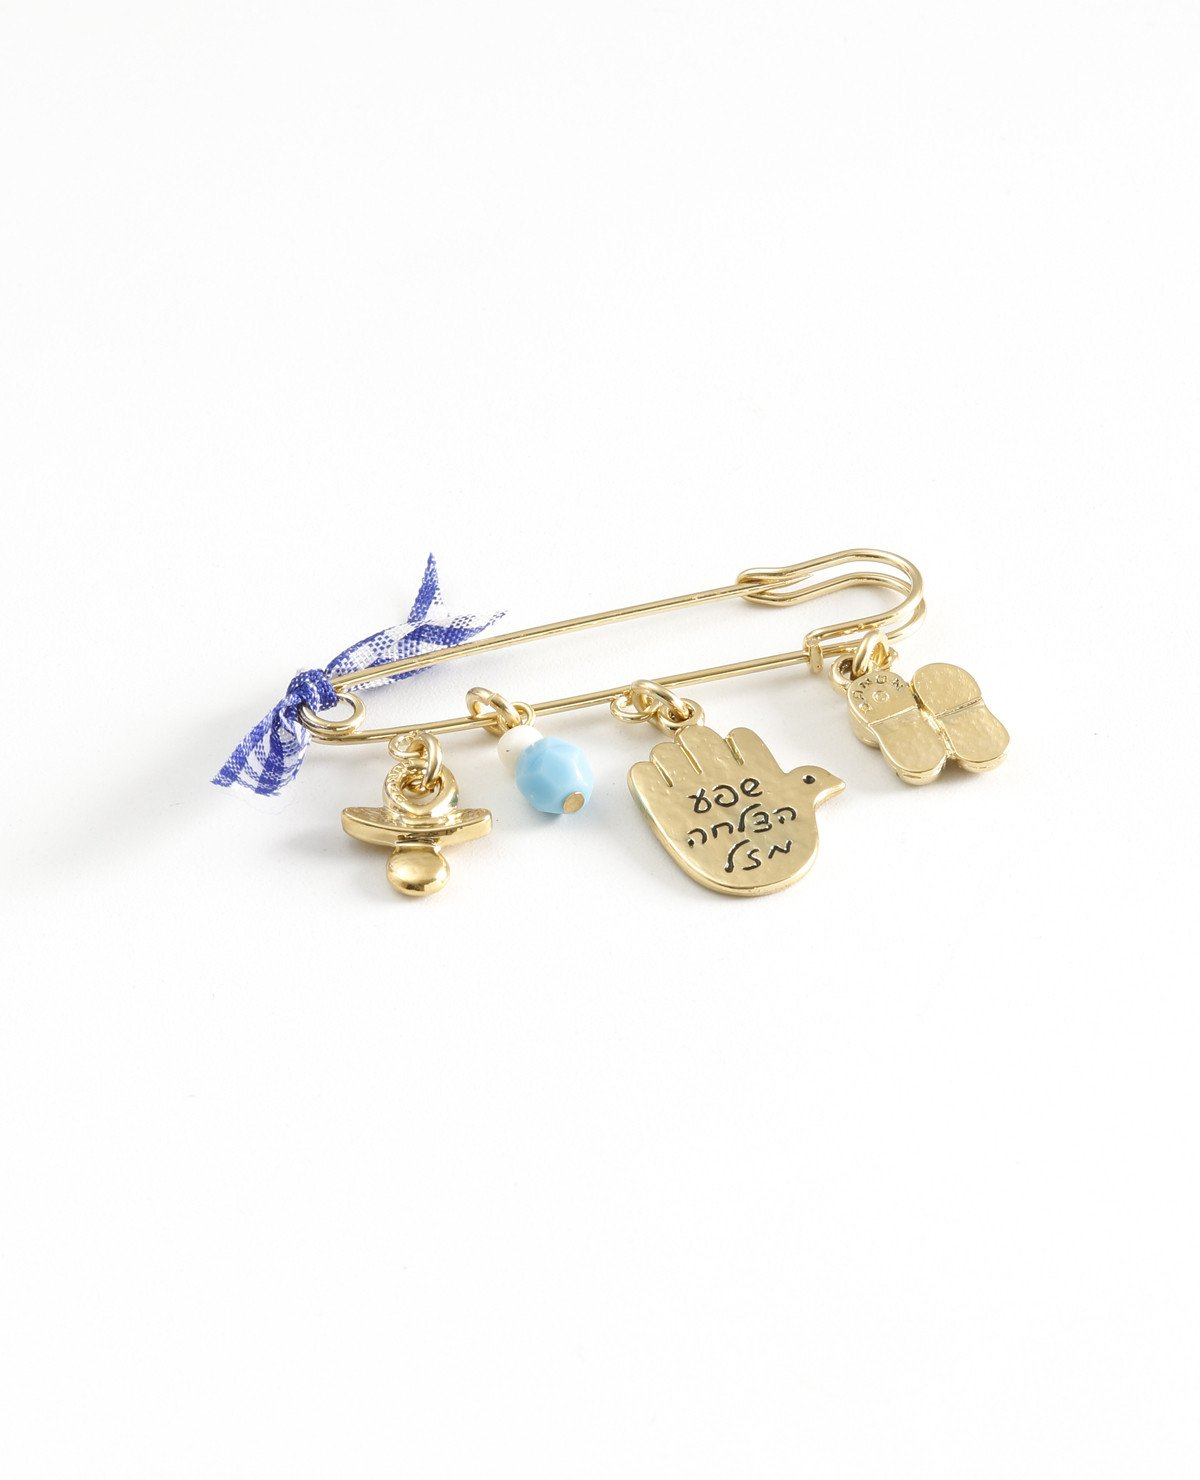 Baby Boy pin with cute elements, 24k gold plated.  Length: 4 cm  Width: 5 cm